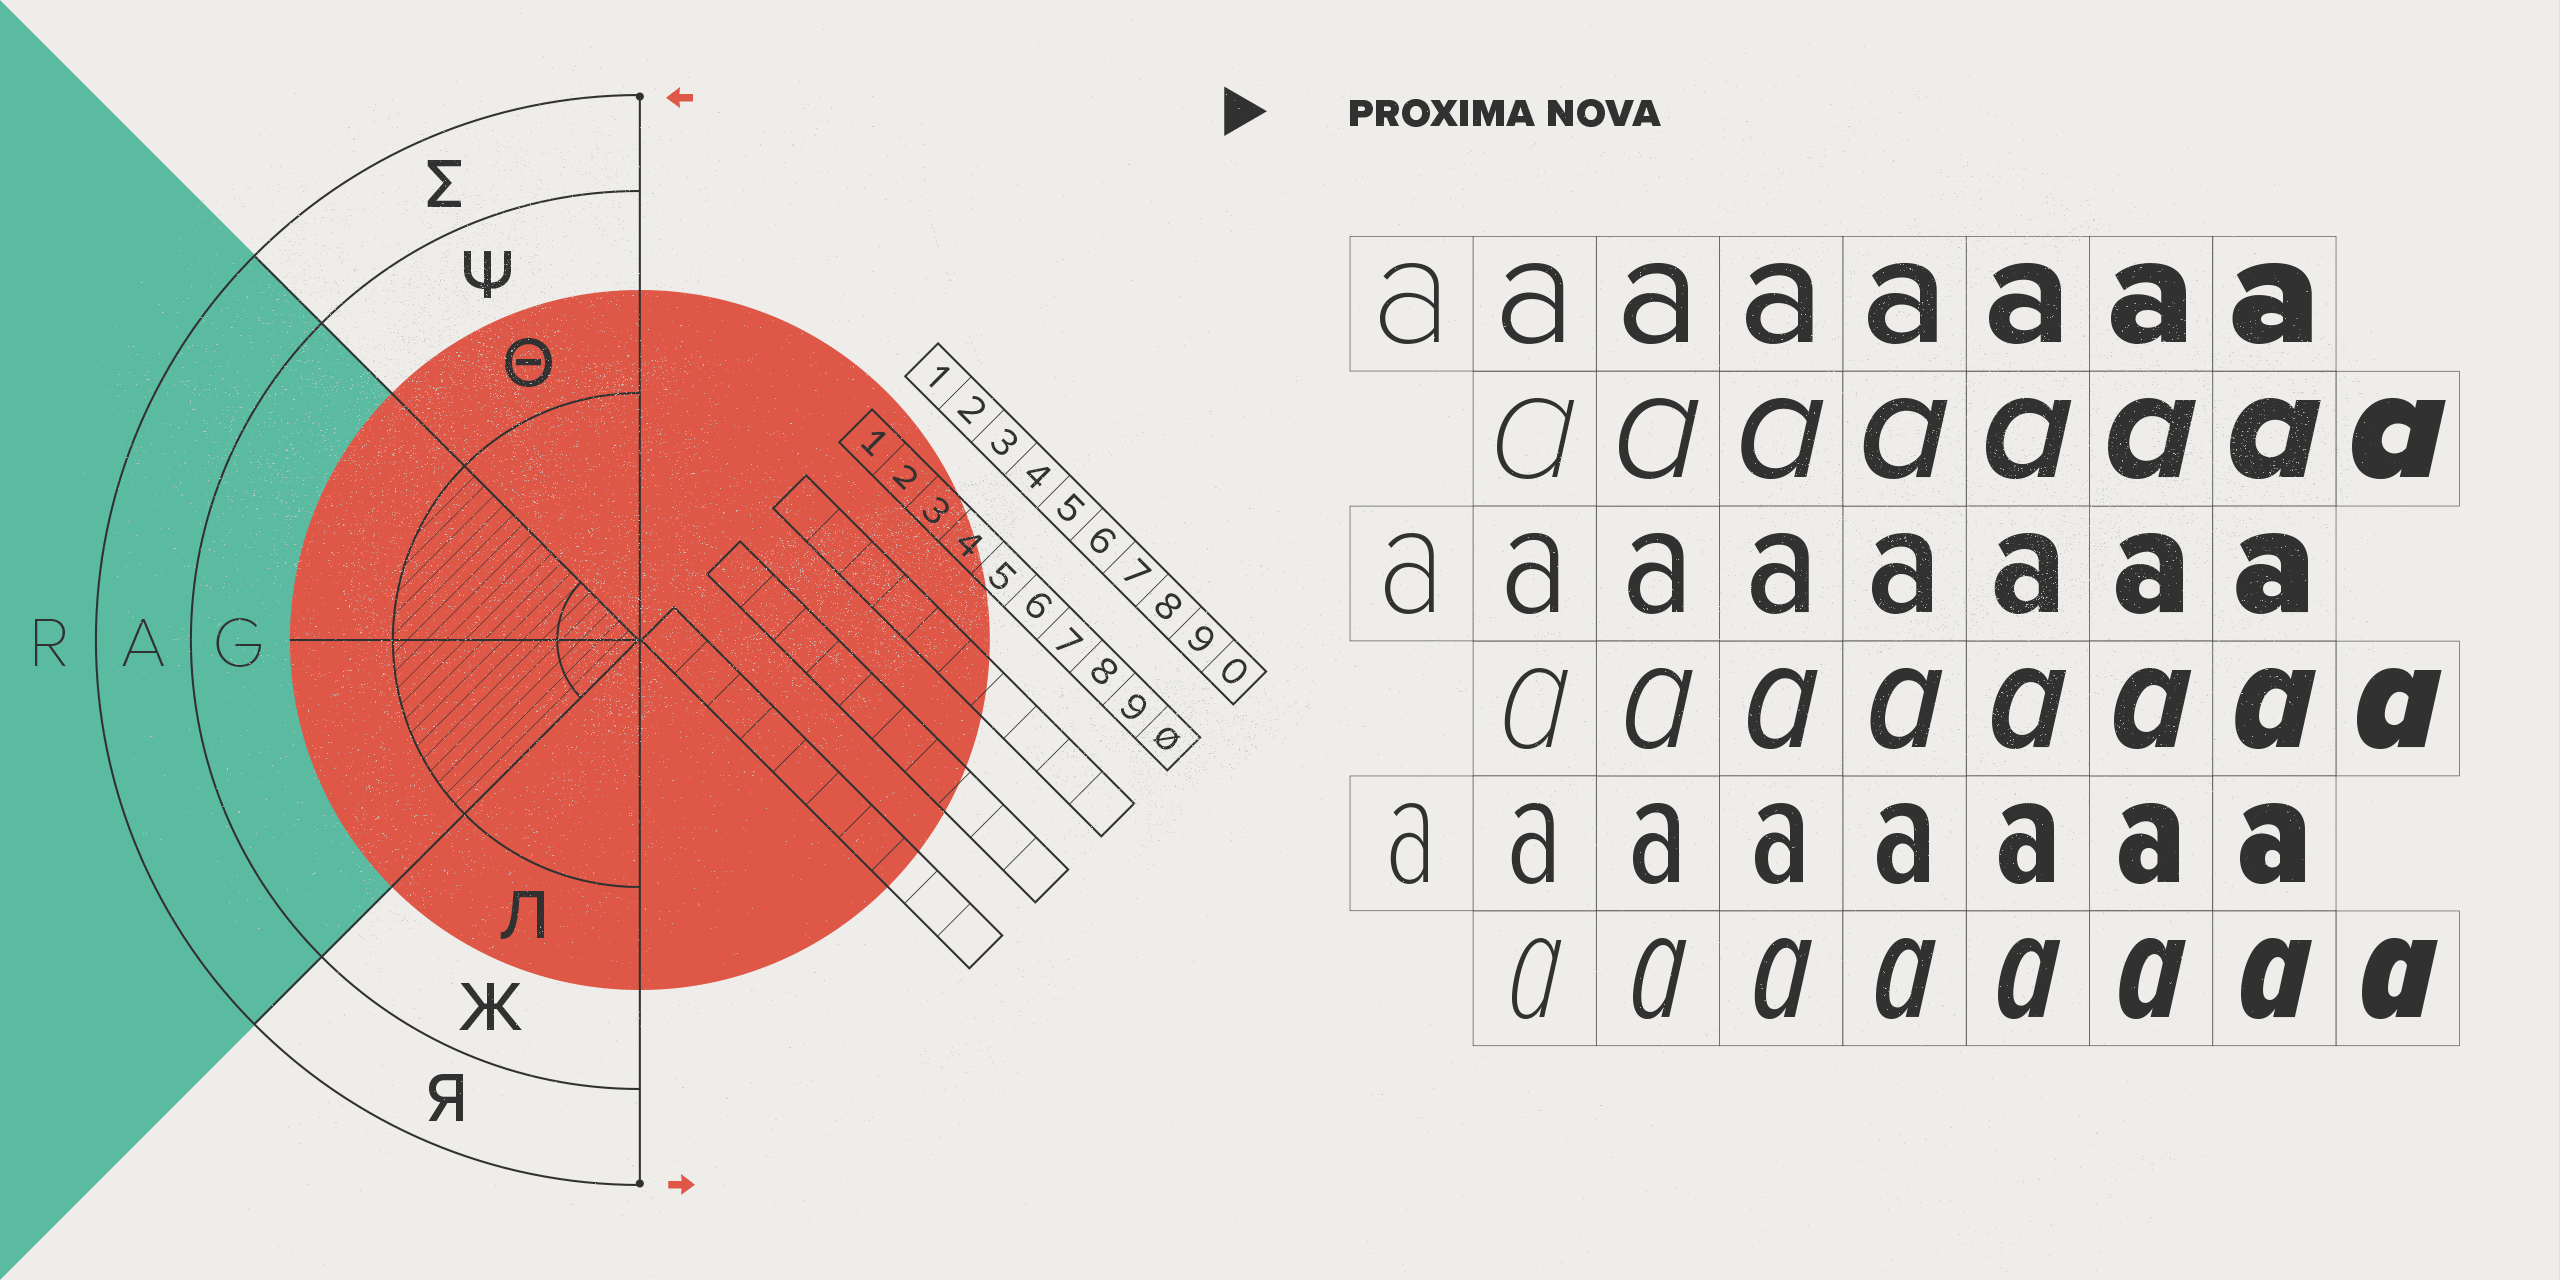 Proxima Nova Free Download Torrent - nameground's blog